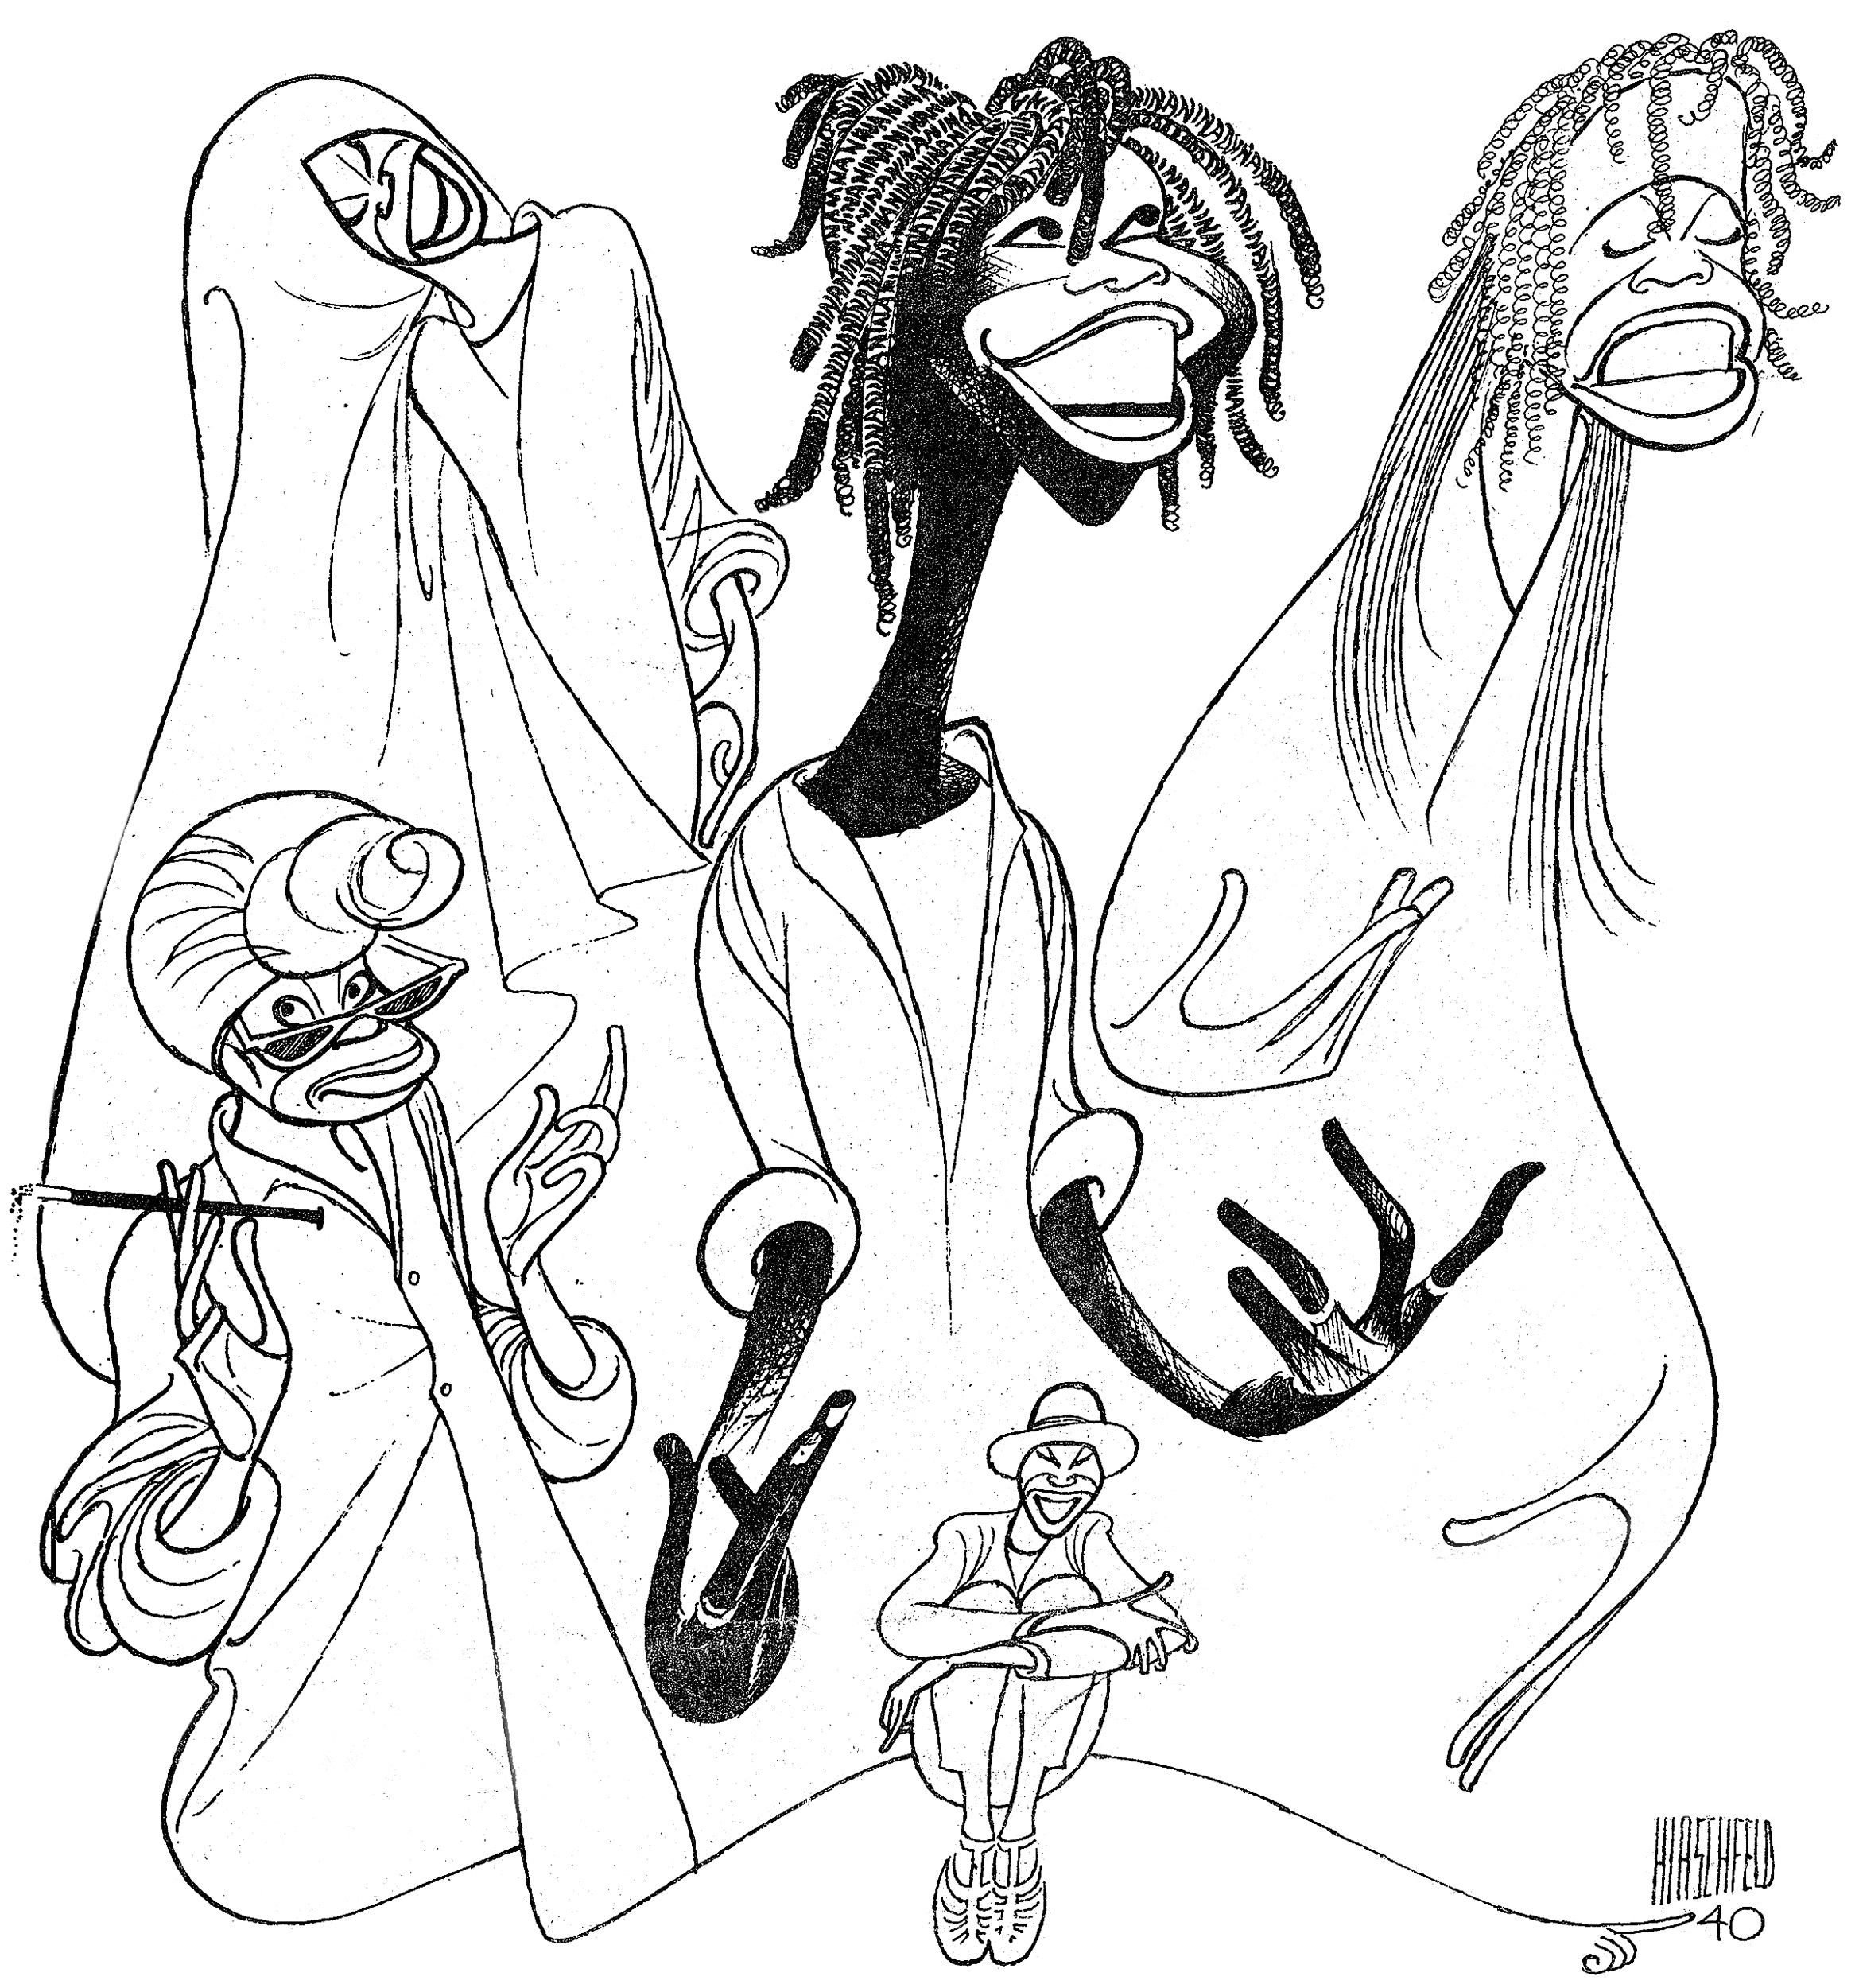 """This undated image provided by the New York Public Library shows a drawing of Whoopi Goldberg by caricaturist Al Hirschfeld, for a poster of her 1984 one-woman Broadway show. It is part of a new exhibition on Hirschfeld, """"The Line King's Library,"""" which opens at The New York Public Library for the Performing Arts at Lincoln Center on Thursday, Oct. 17, 2013. (AP Photo/New York Public Library, Al Hirschfeld)"""